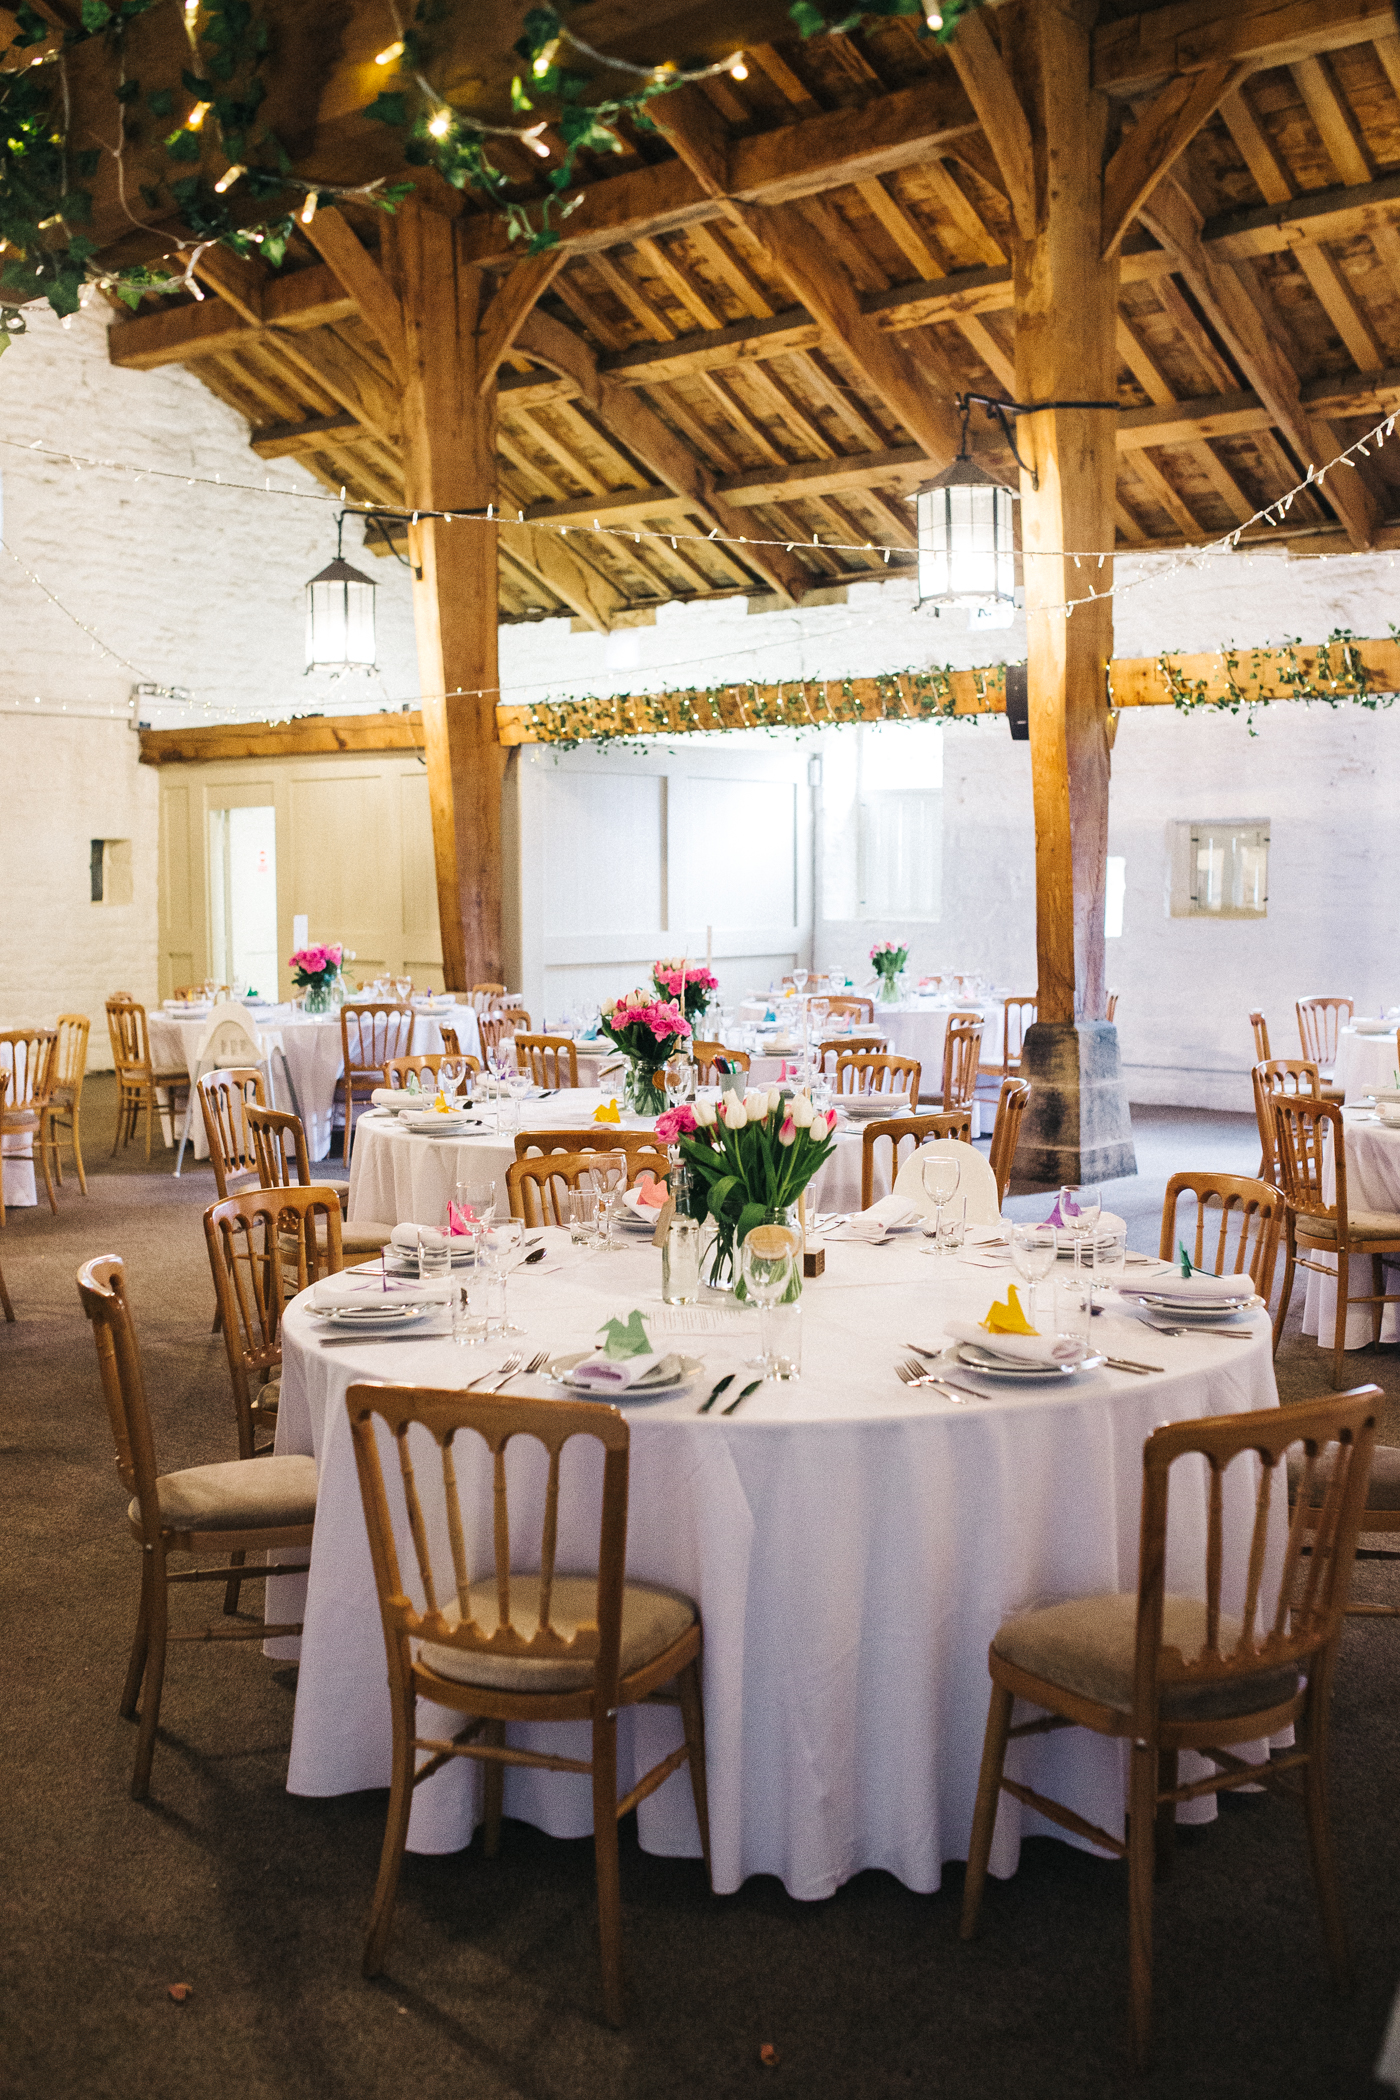 the barn is decorated for a spring wedding with tulips. spring barn wedding at east riddlesden hall keighley west yorkshire wedding photographer